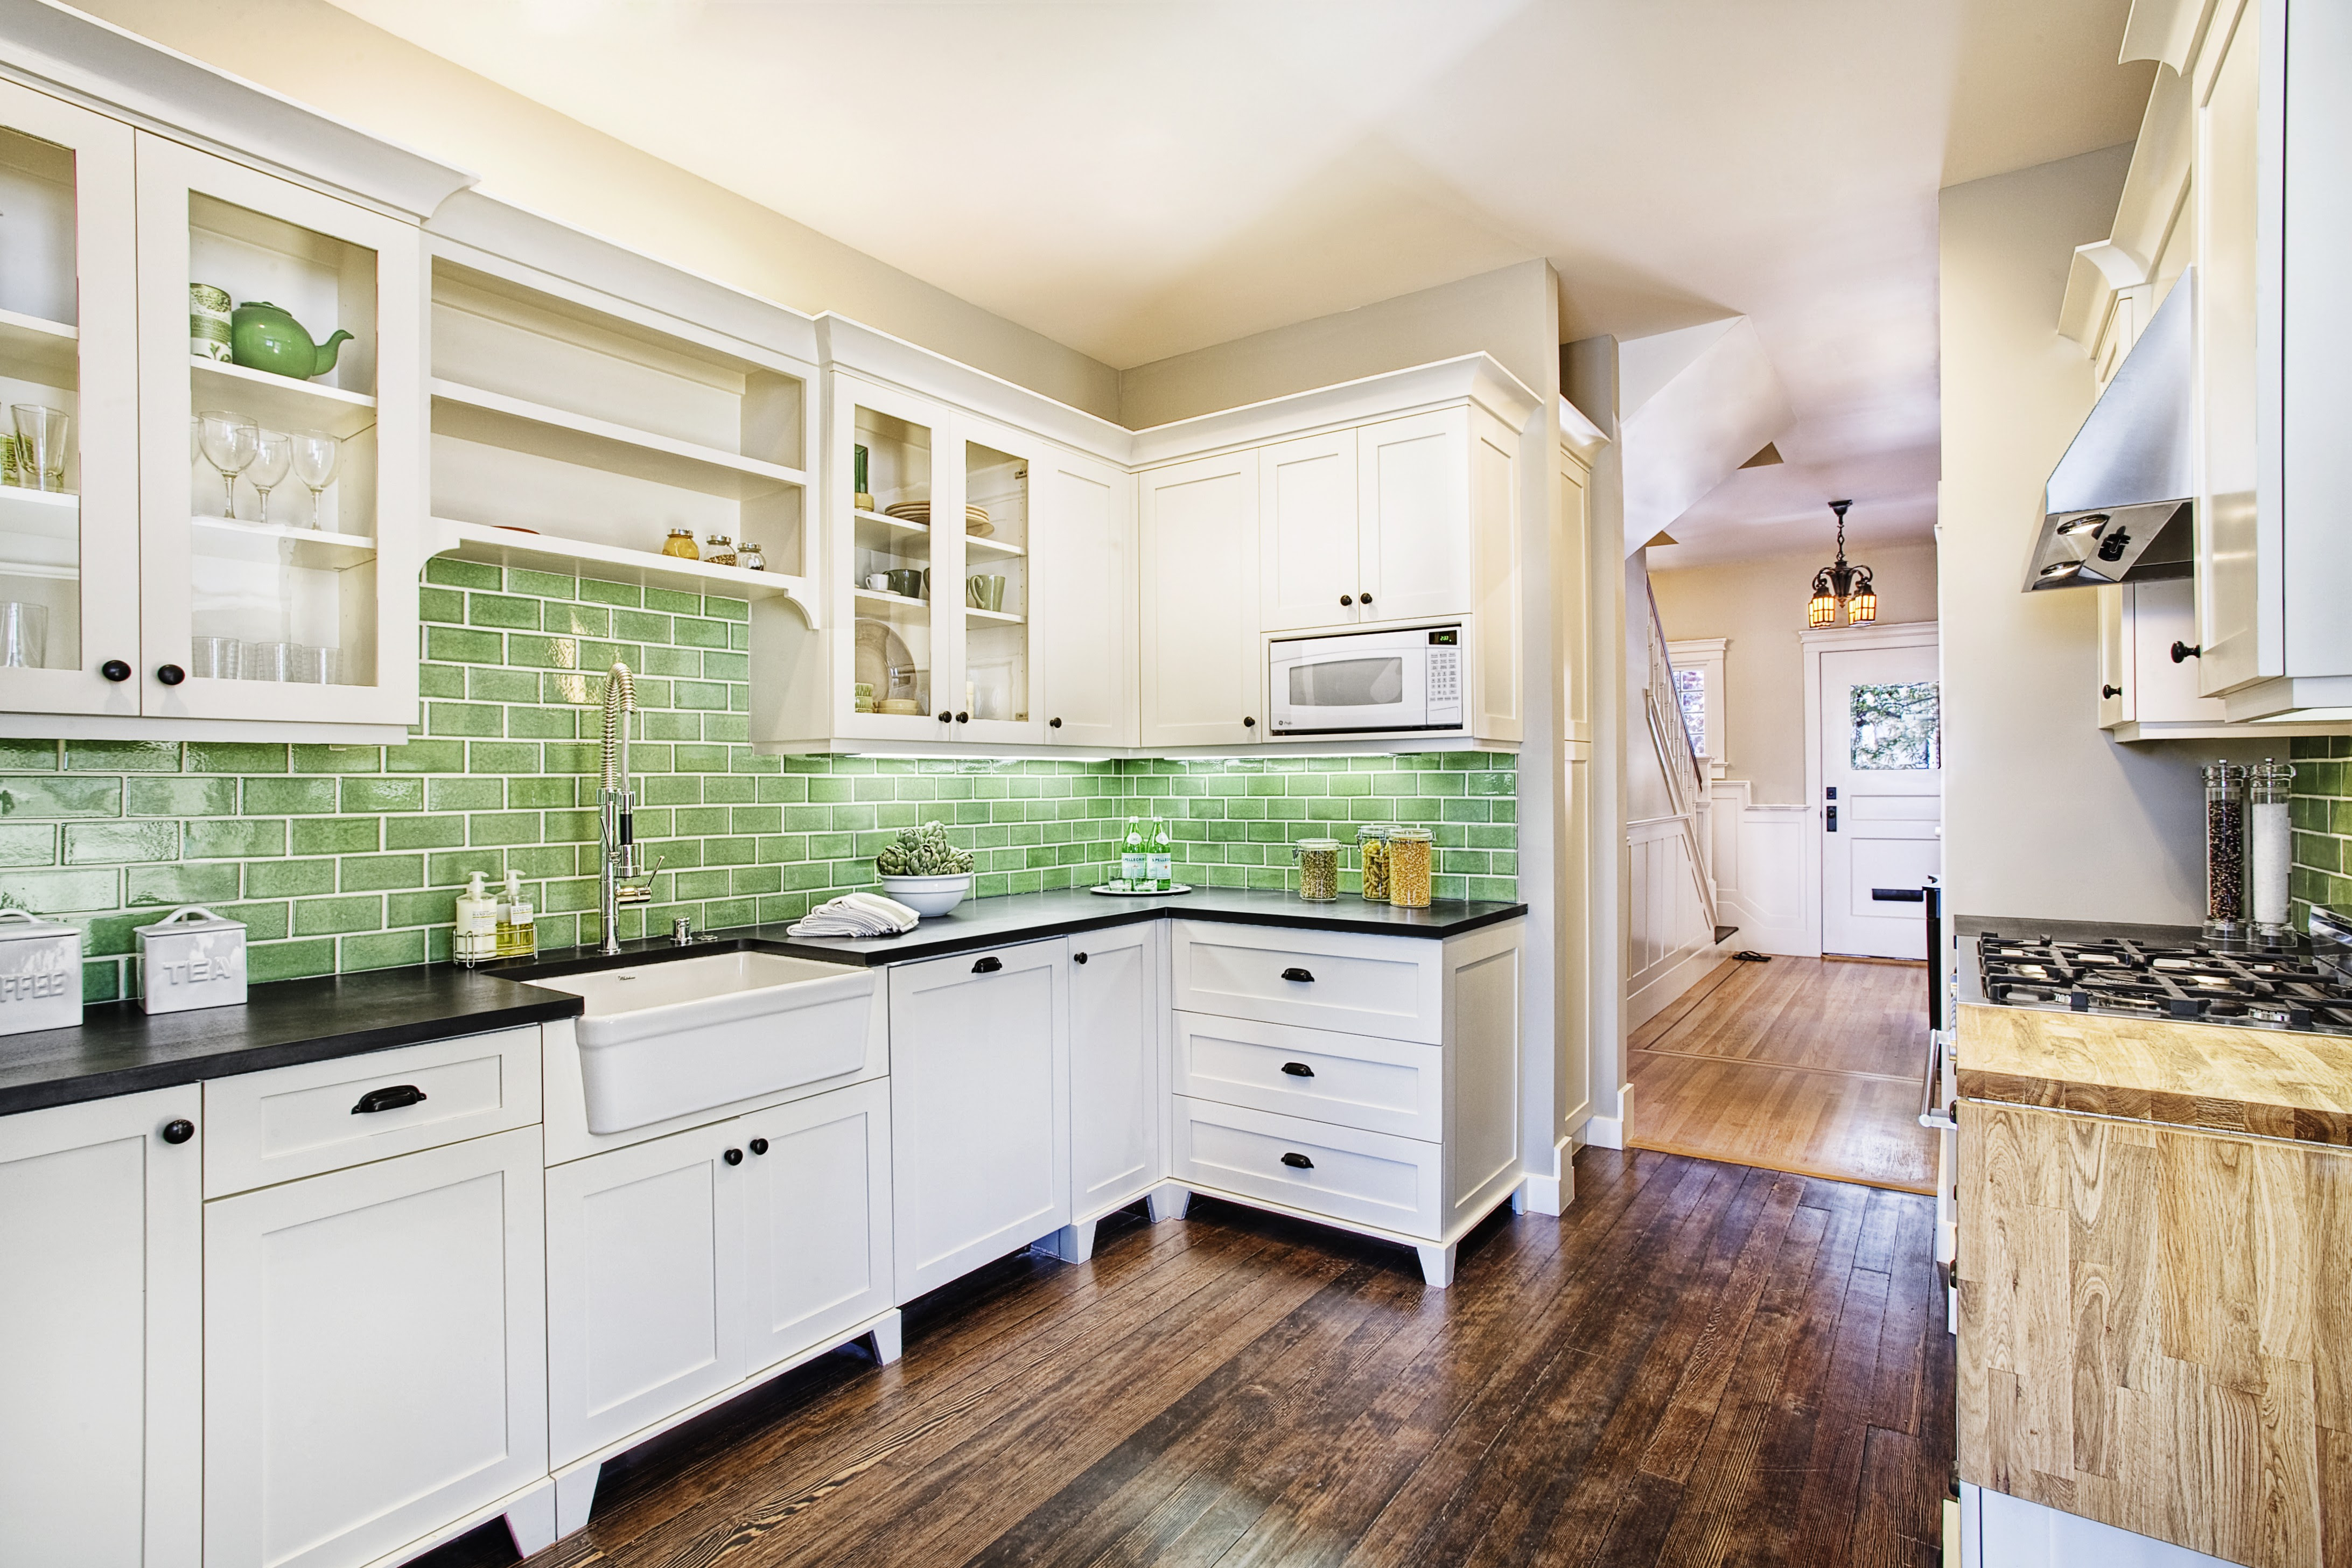 10 Kitchen Color Ideas We Love - Colorful Kitchens